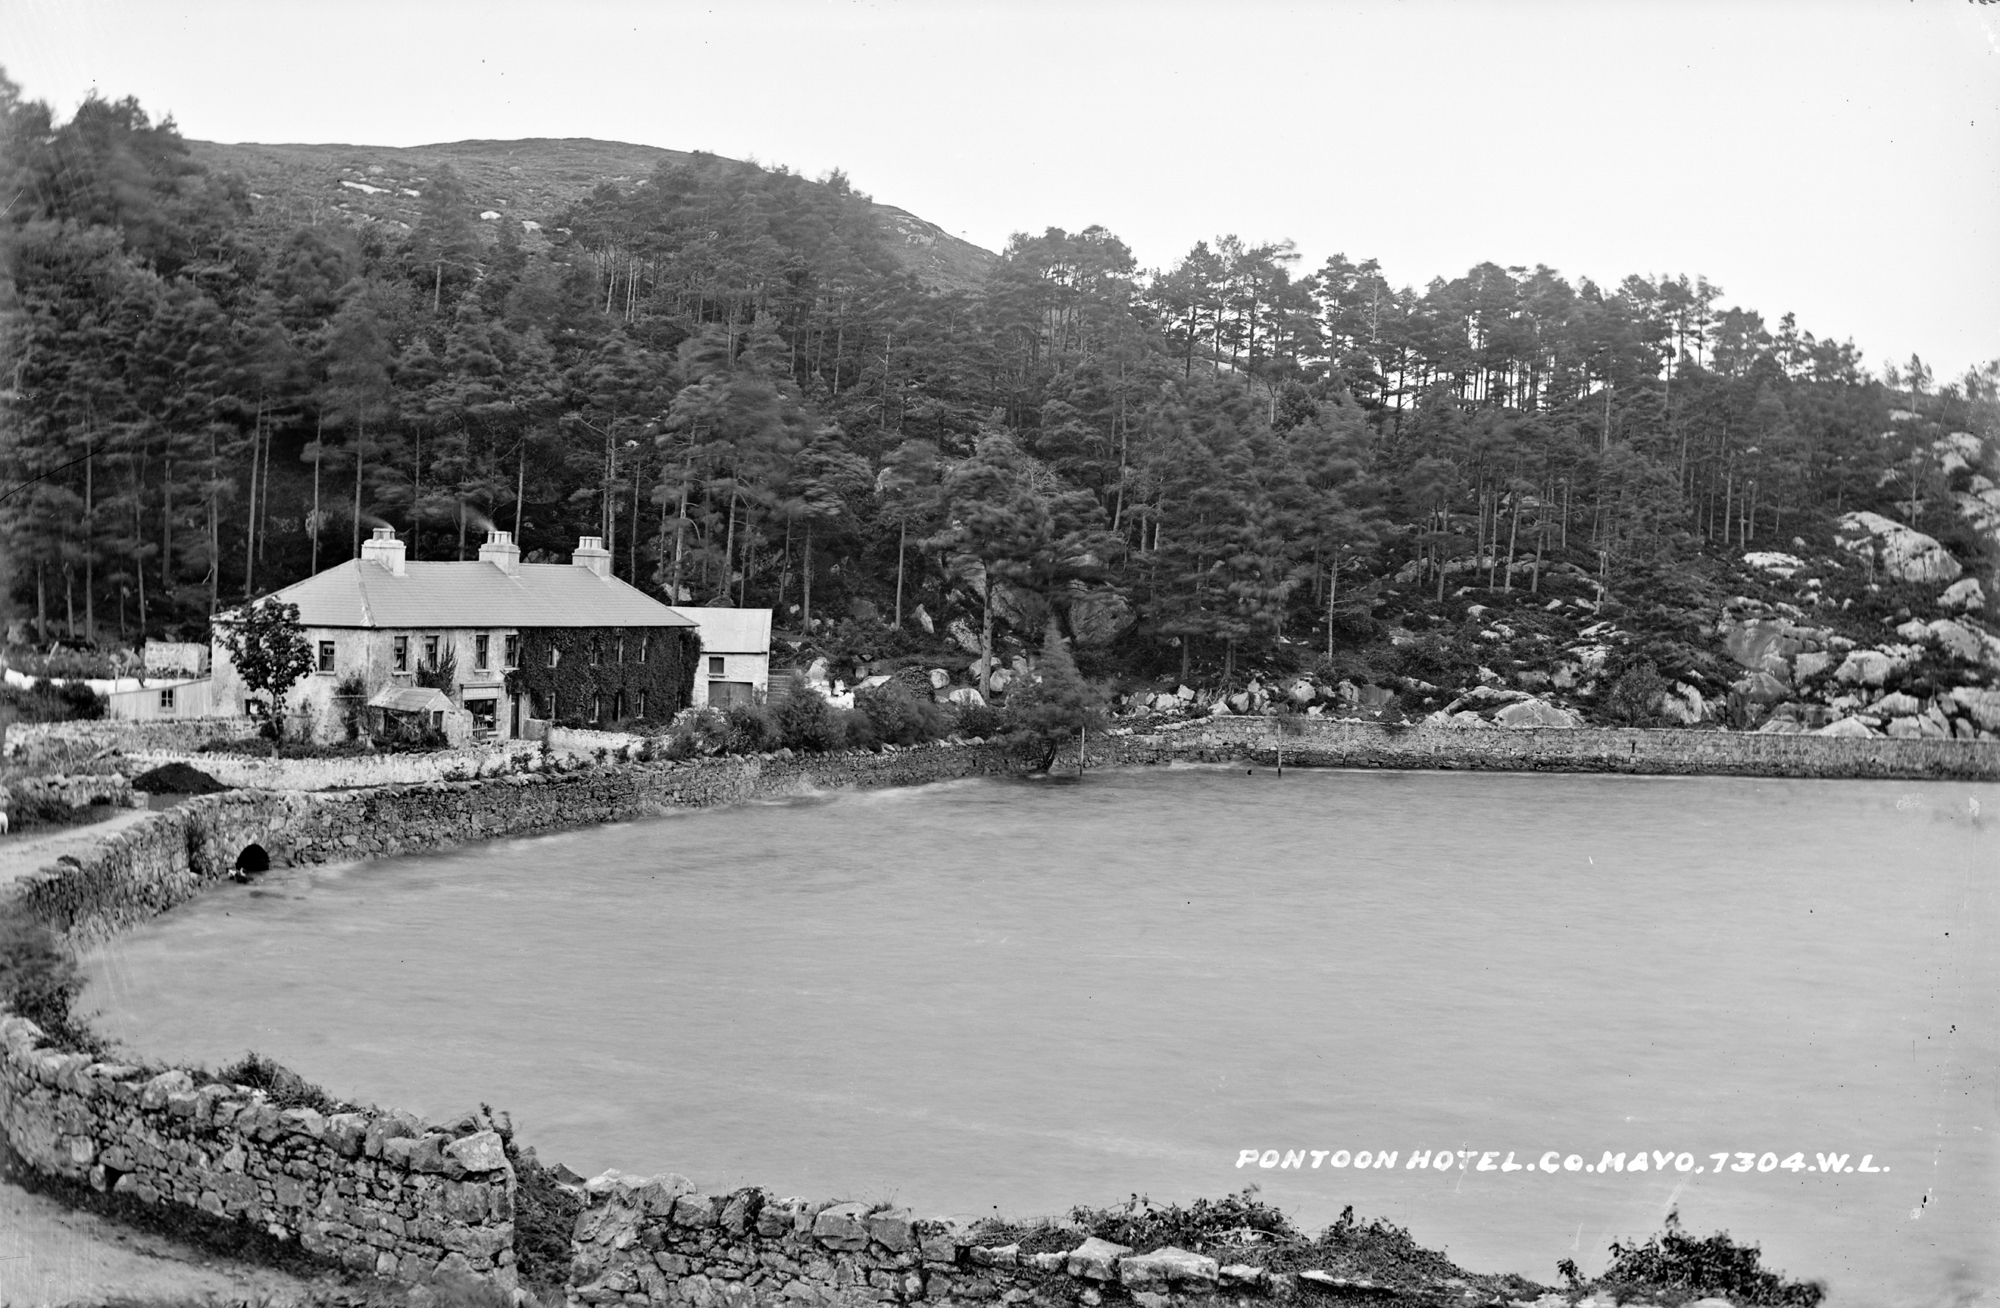 Hotel, Pontoon, Co. Mayo